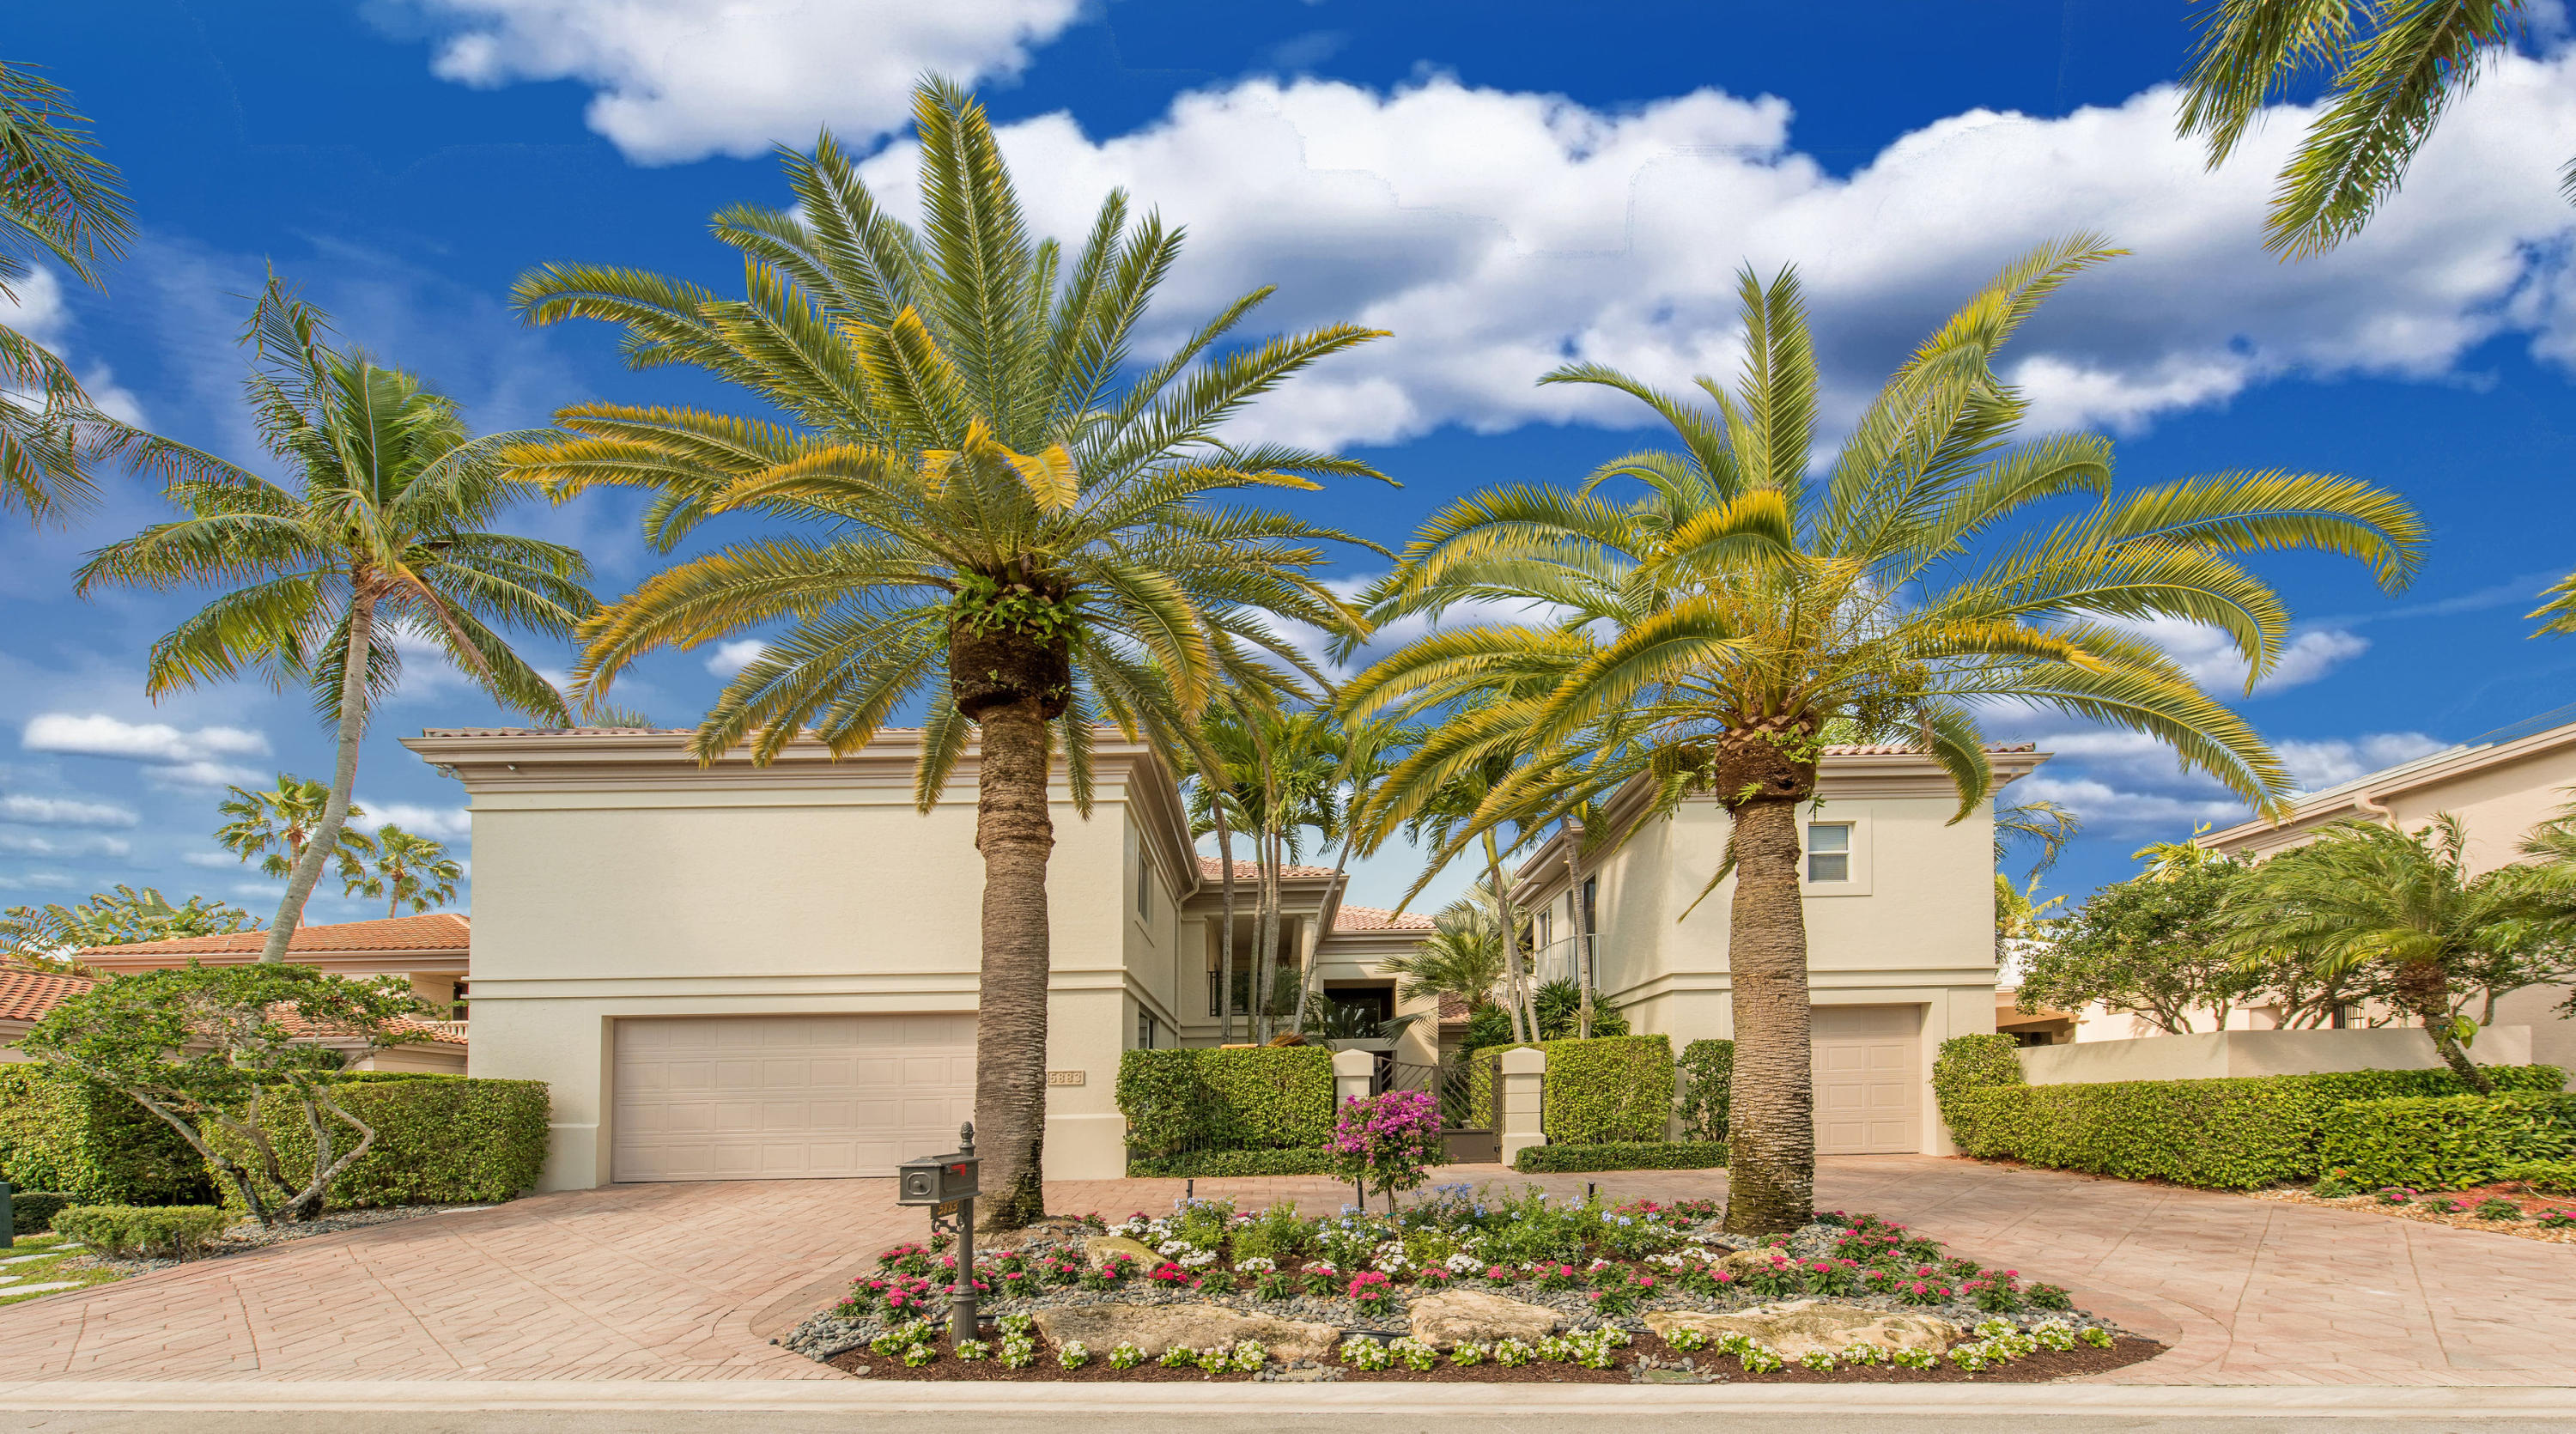 5883 25th Court, Boca Raton, Florida 33496, 6 Bedrooms Bedrooms, ,5 BathroomsBathrooms,Residential,For Sale,25th,RX-10587265